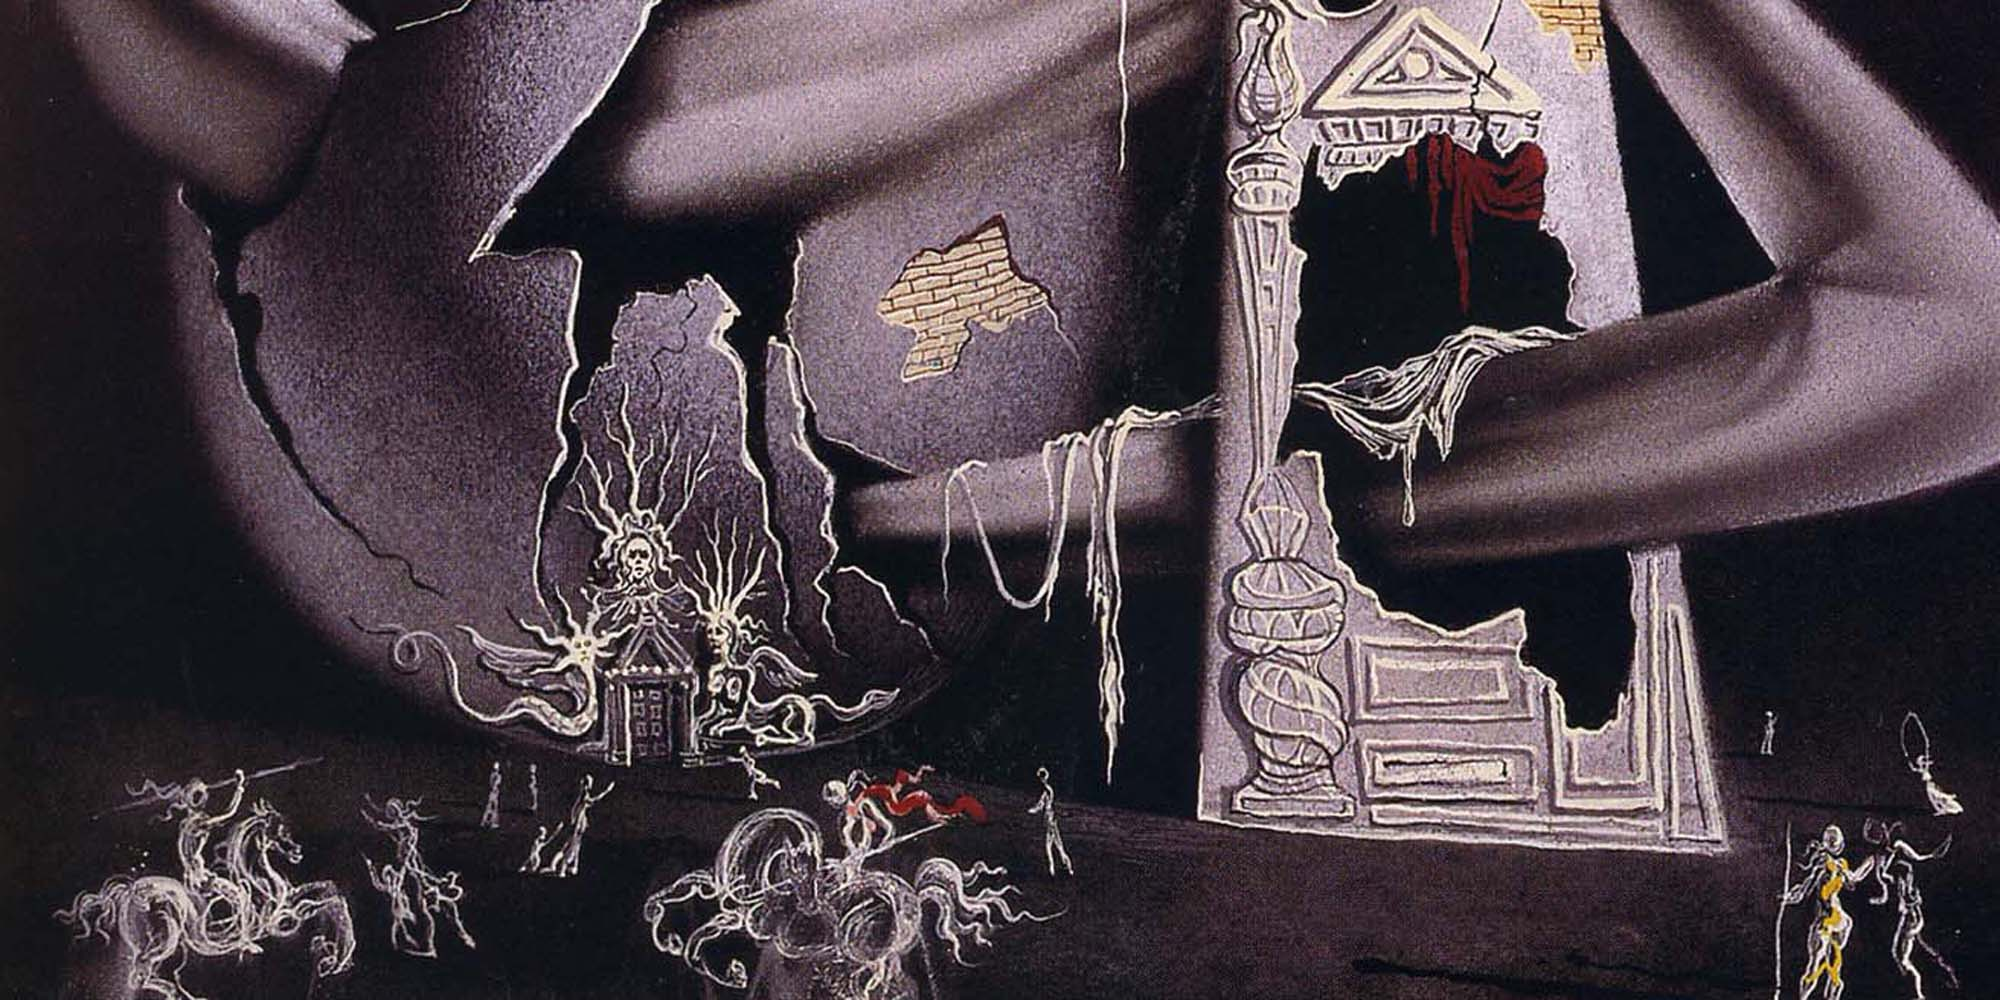 A cover of an exhibition catalog, featuring dark purple objects. A sphere with cracks appears on the left, next to a tower-like shape. A ribbon-like swirl weaves from the tower to the sphere, and small drawings of horses, cars, and people are placed mostly at the bottom of the work.